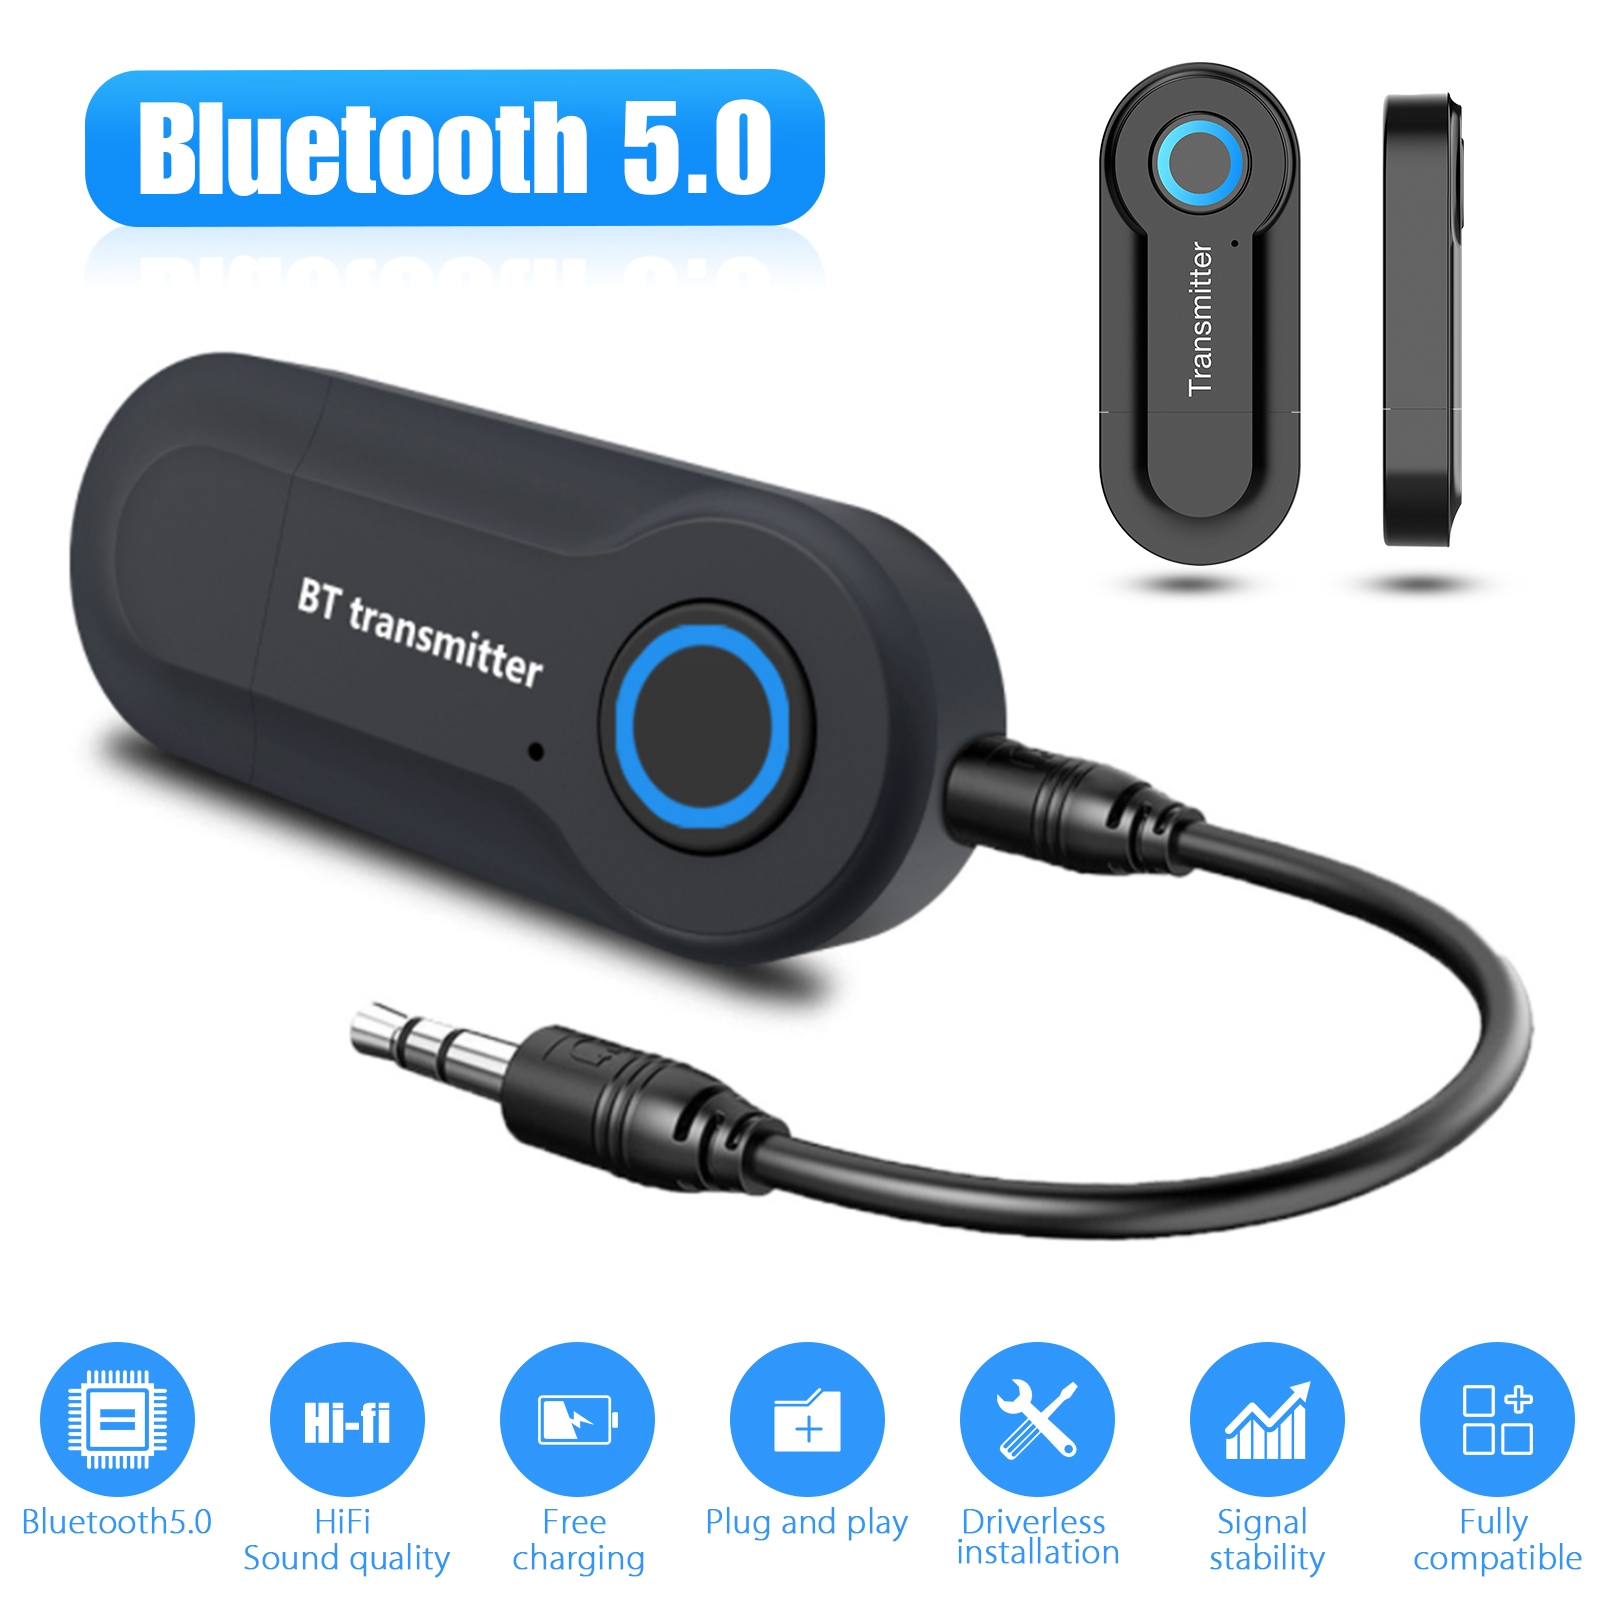 2in 1 Wireless Bluetooth Transmitter /& Receiver A2DP for TV Stereo Audio Adapter